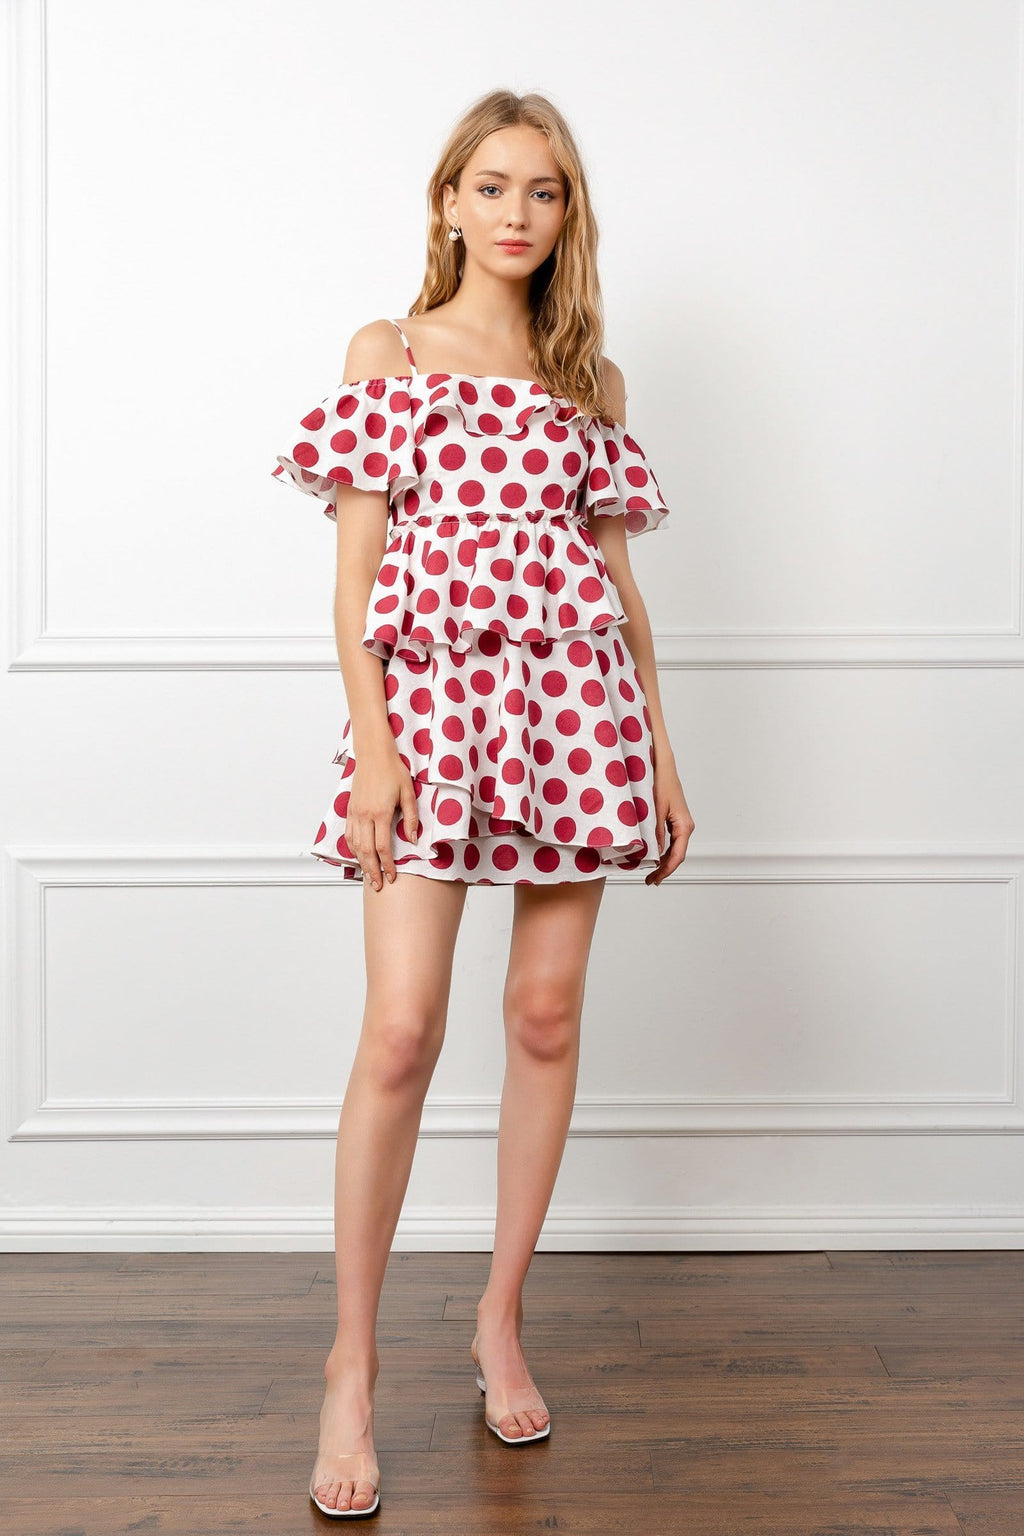 White and Red Polka Dot Ruffle Mini Dress | J.ING women's apparel